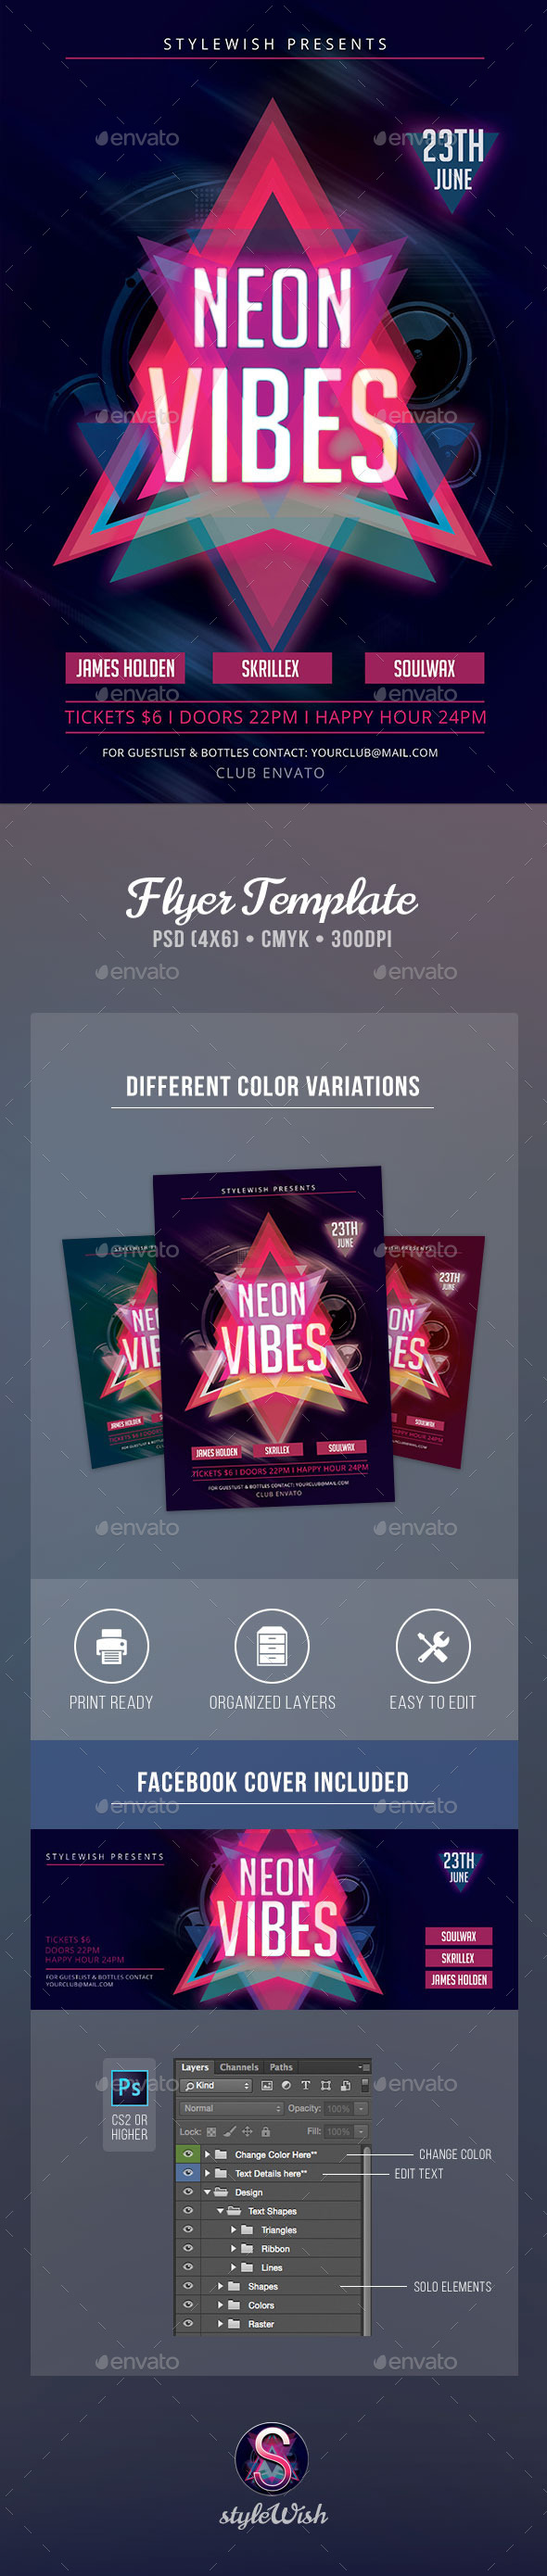 Neon Vibes Flyer + Fb Timeline - Clubs & Parties Events